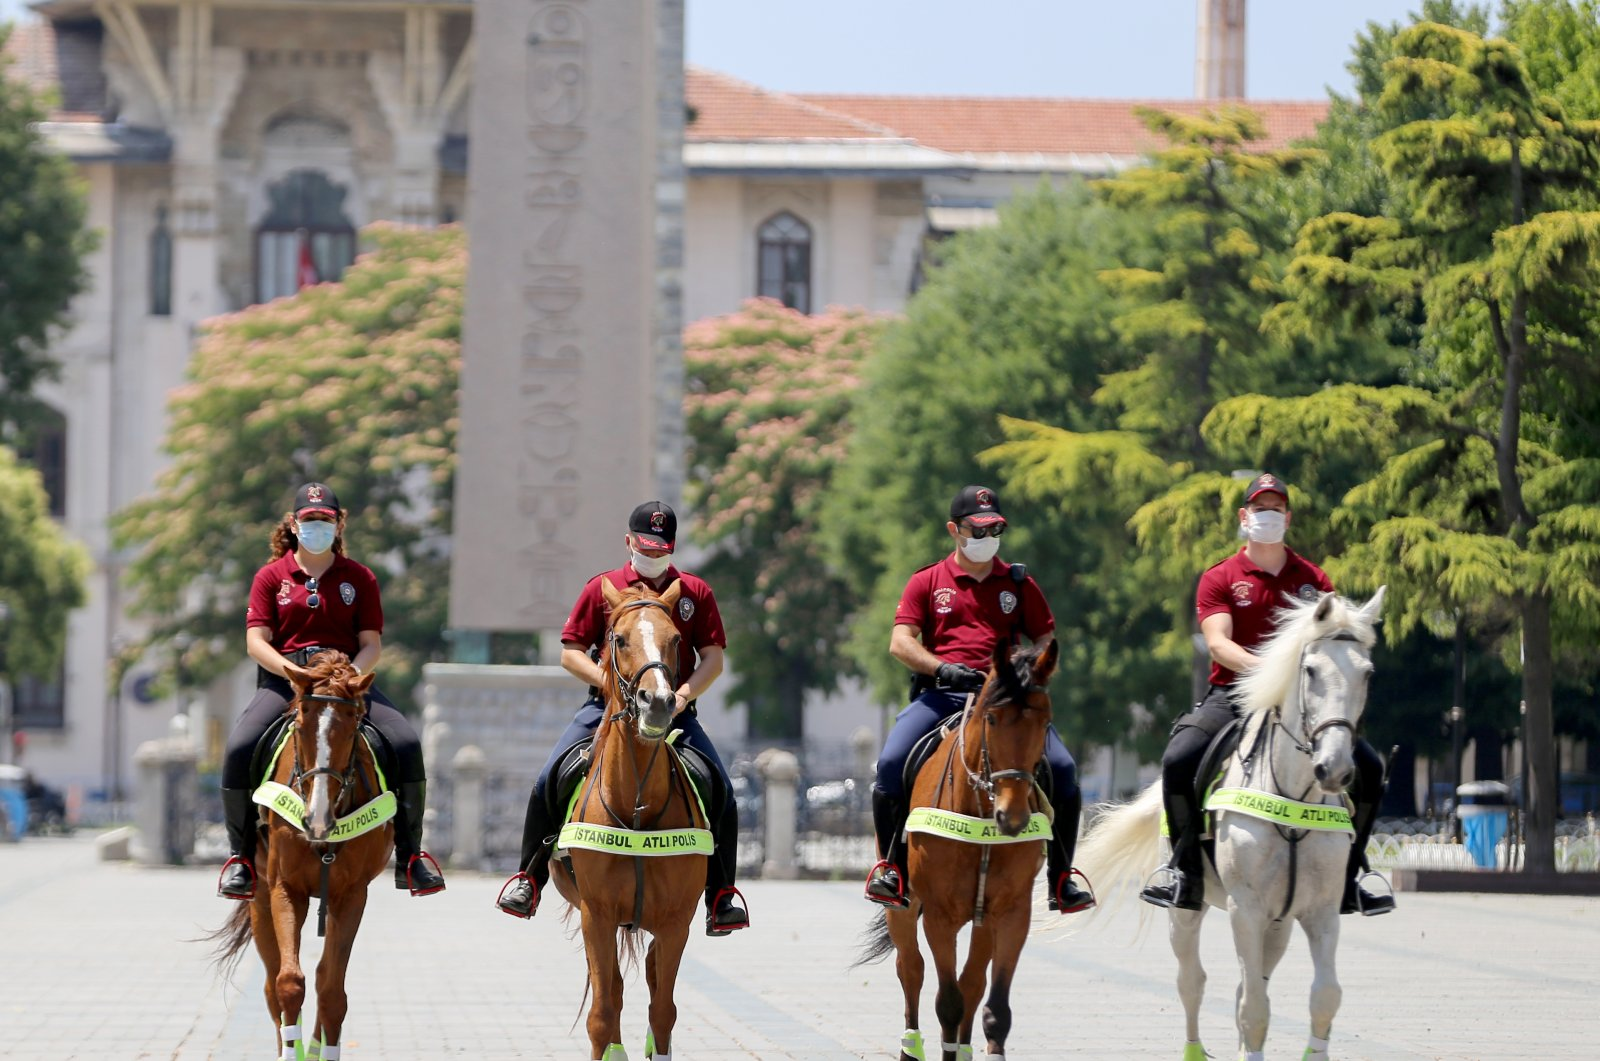 Mounted police officers patrol against people not wearing masks at Sultanahmet Square, in Istanbul, Turkey, July 4, 2020. (AA Photo)